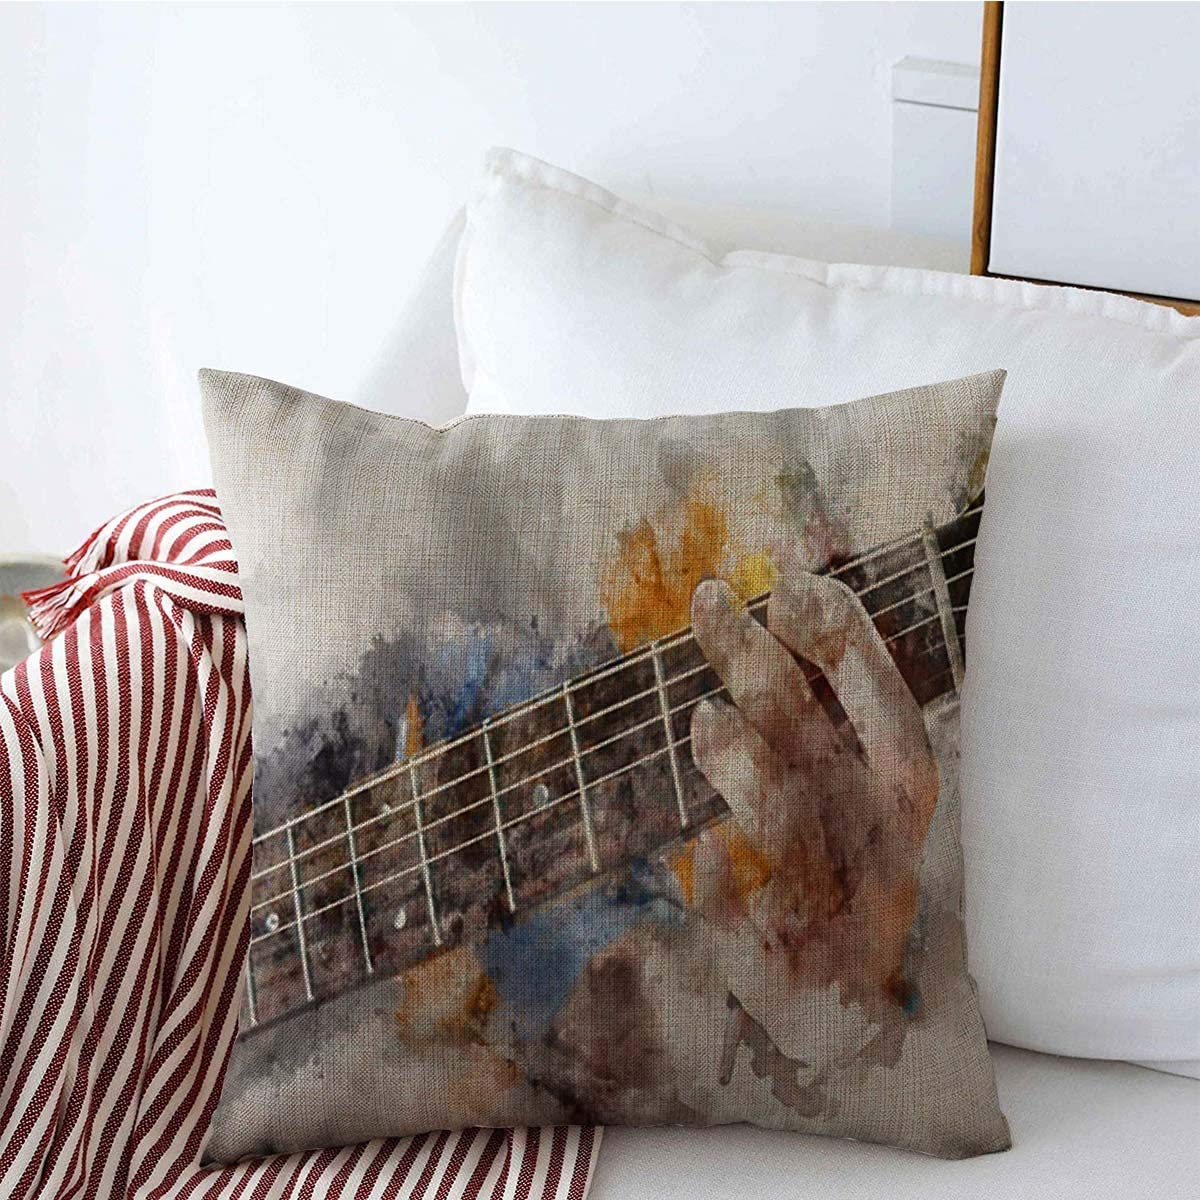 Decorative Throw Pillow Cover White Watercolor Musician Abstract Playing Acoustic Gig Guitar Guitarist Singer Roll Rock Brush Linen Pillowcase Square Size 20